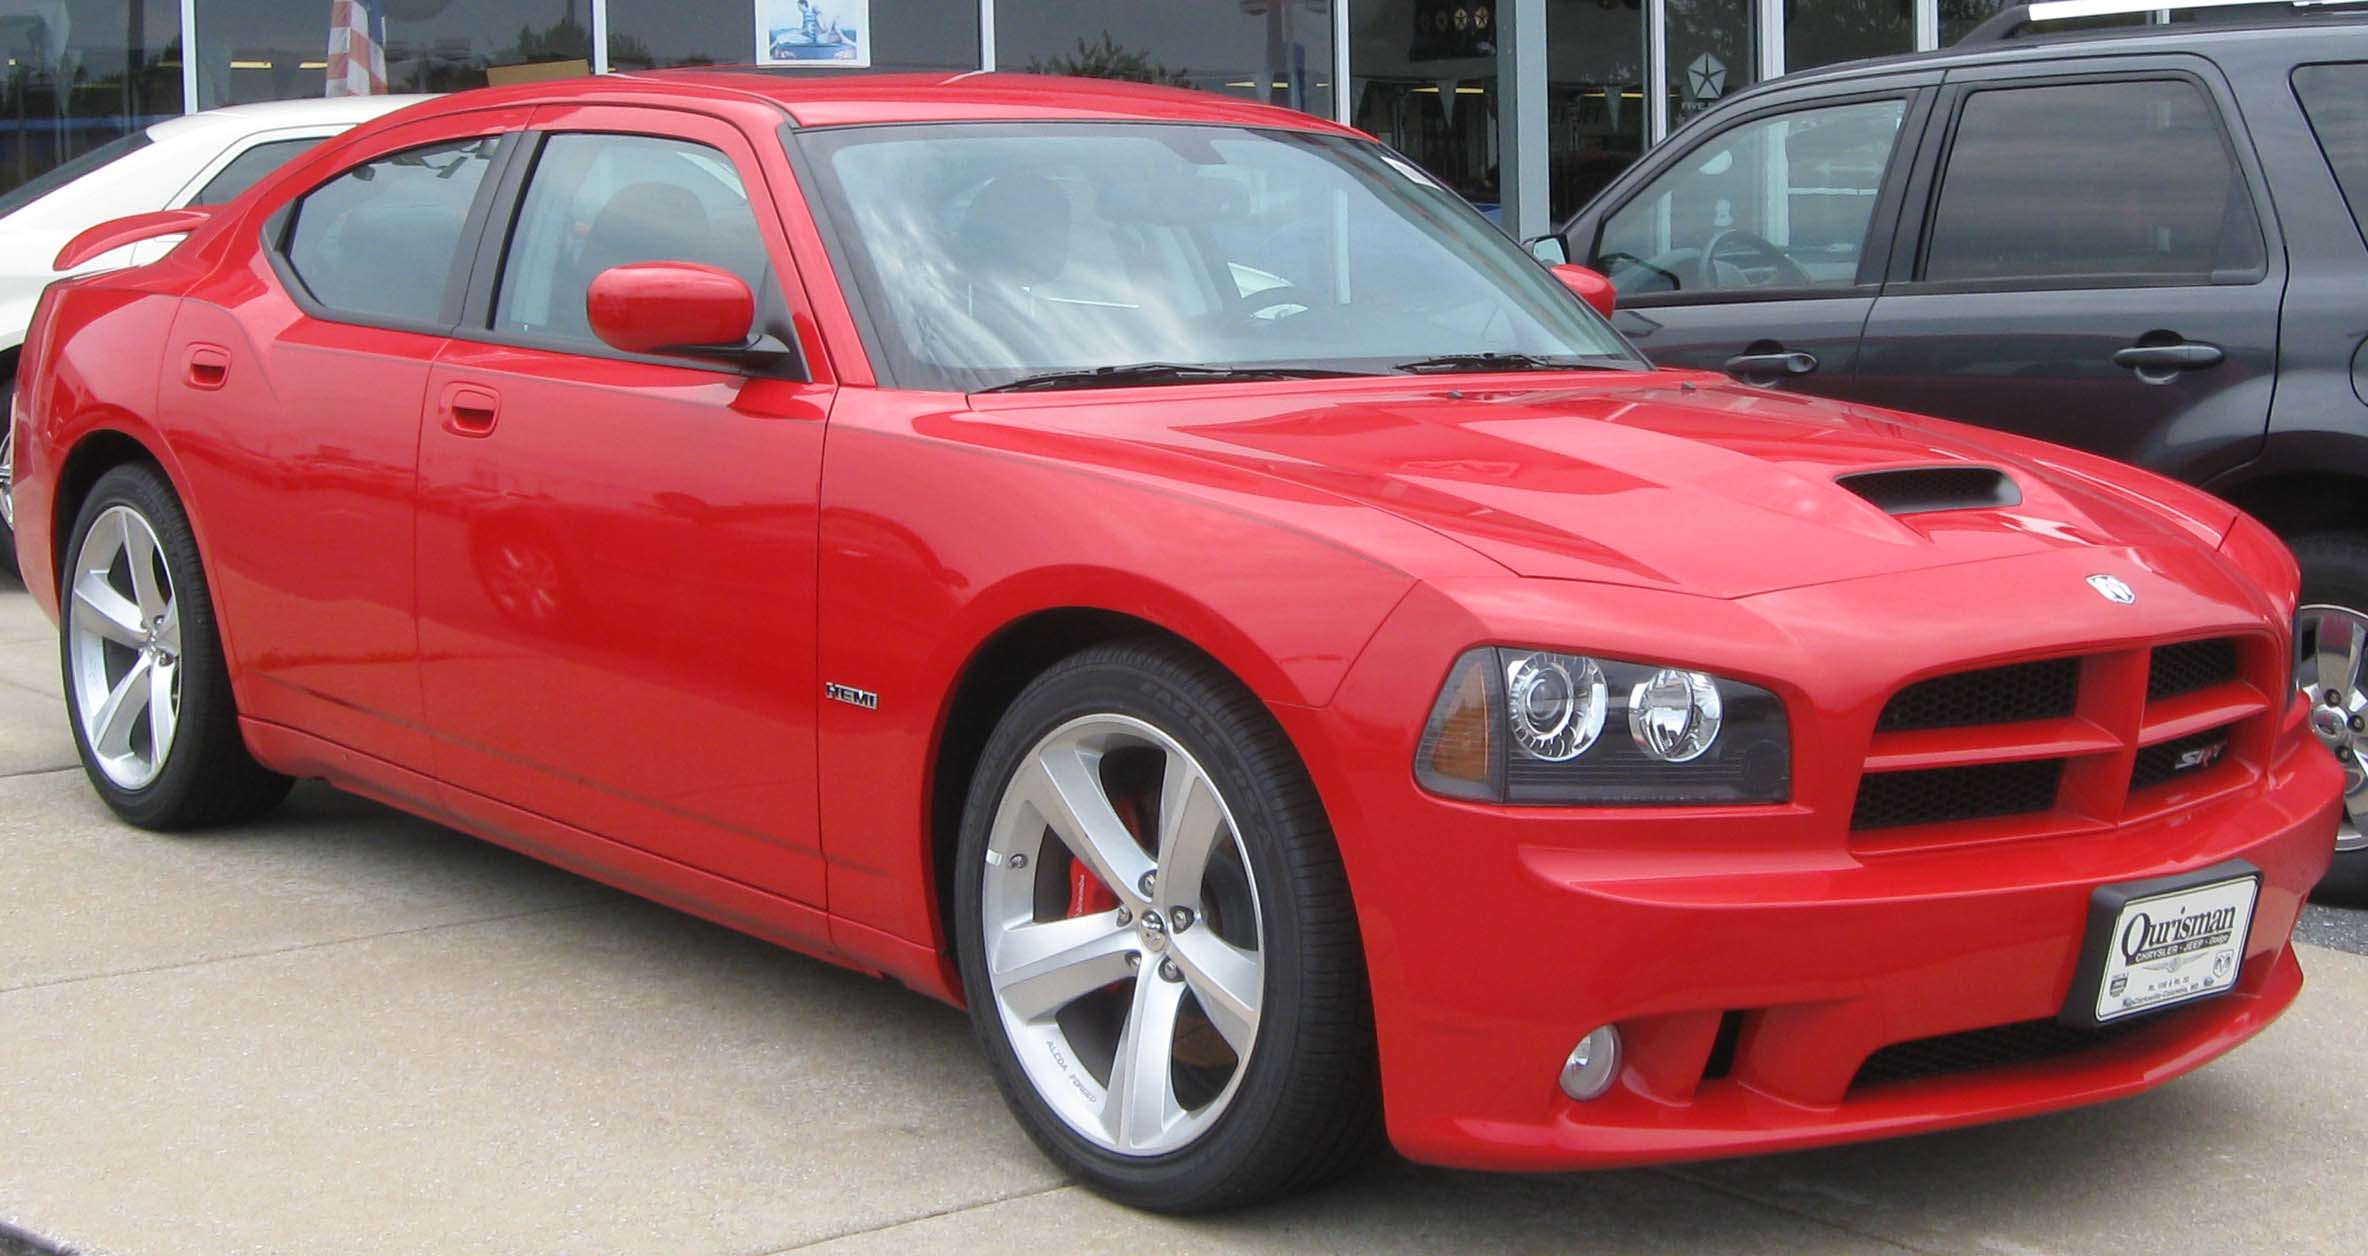 wheel x best org charming sedan rear interior photos mercurioinforma driver base dodge charger side drive